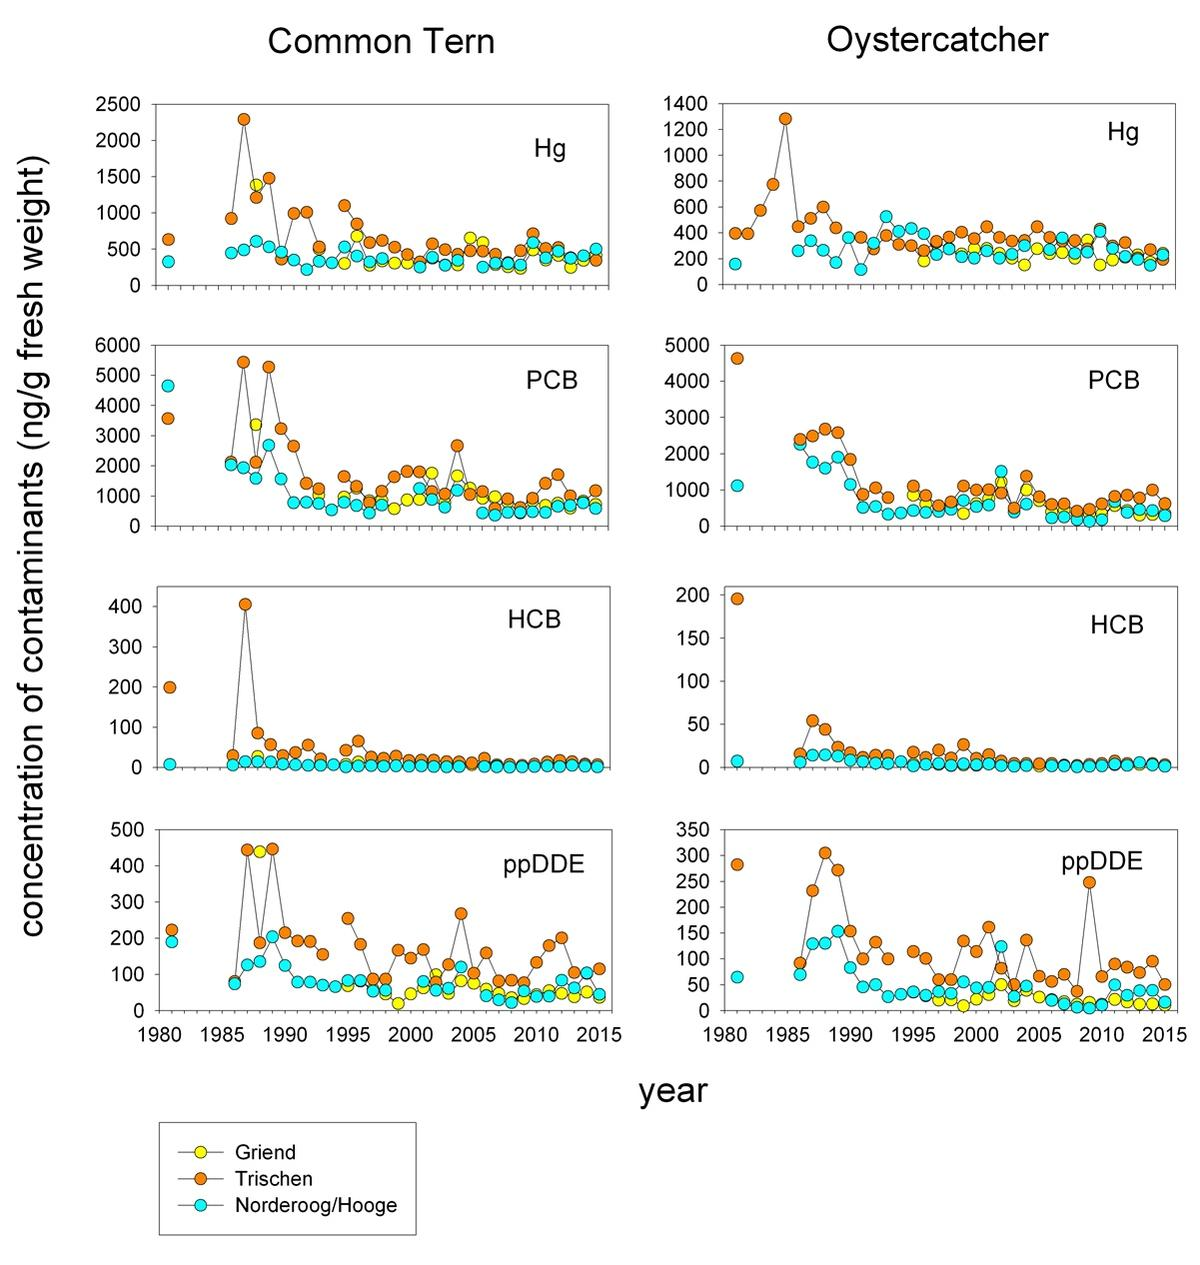 Figure 5. Long-term (1981-2015) trends of concentrations of mercury, PCBs, HCB and ppDDE in common tern and oystercatcher eggs from three selected breeding sites in the Wadden Sea